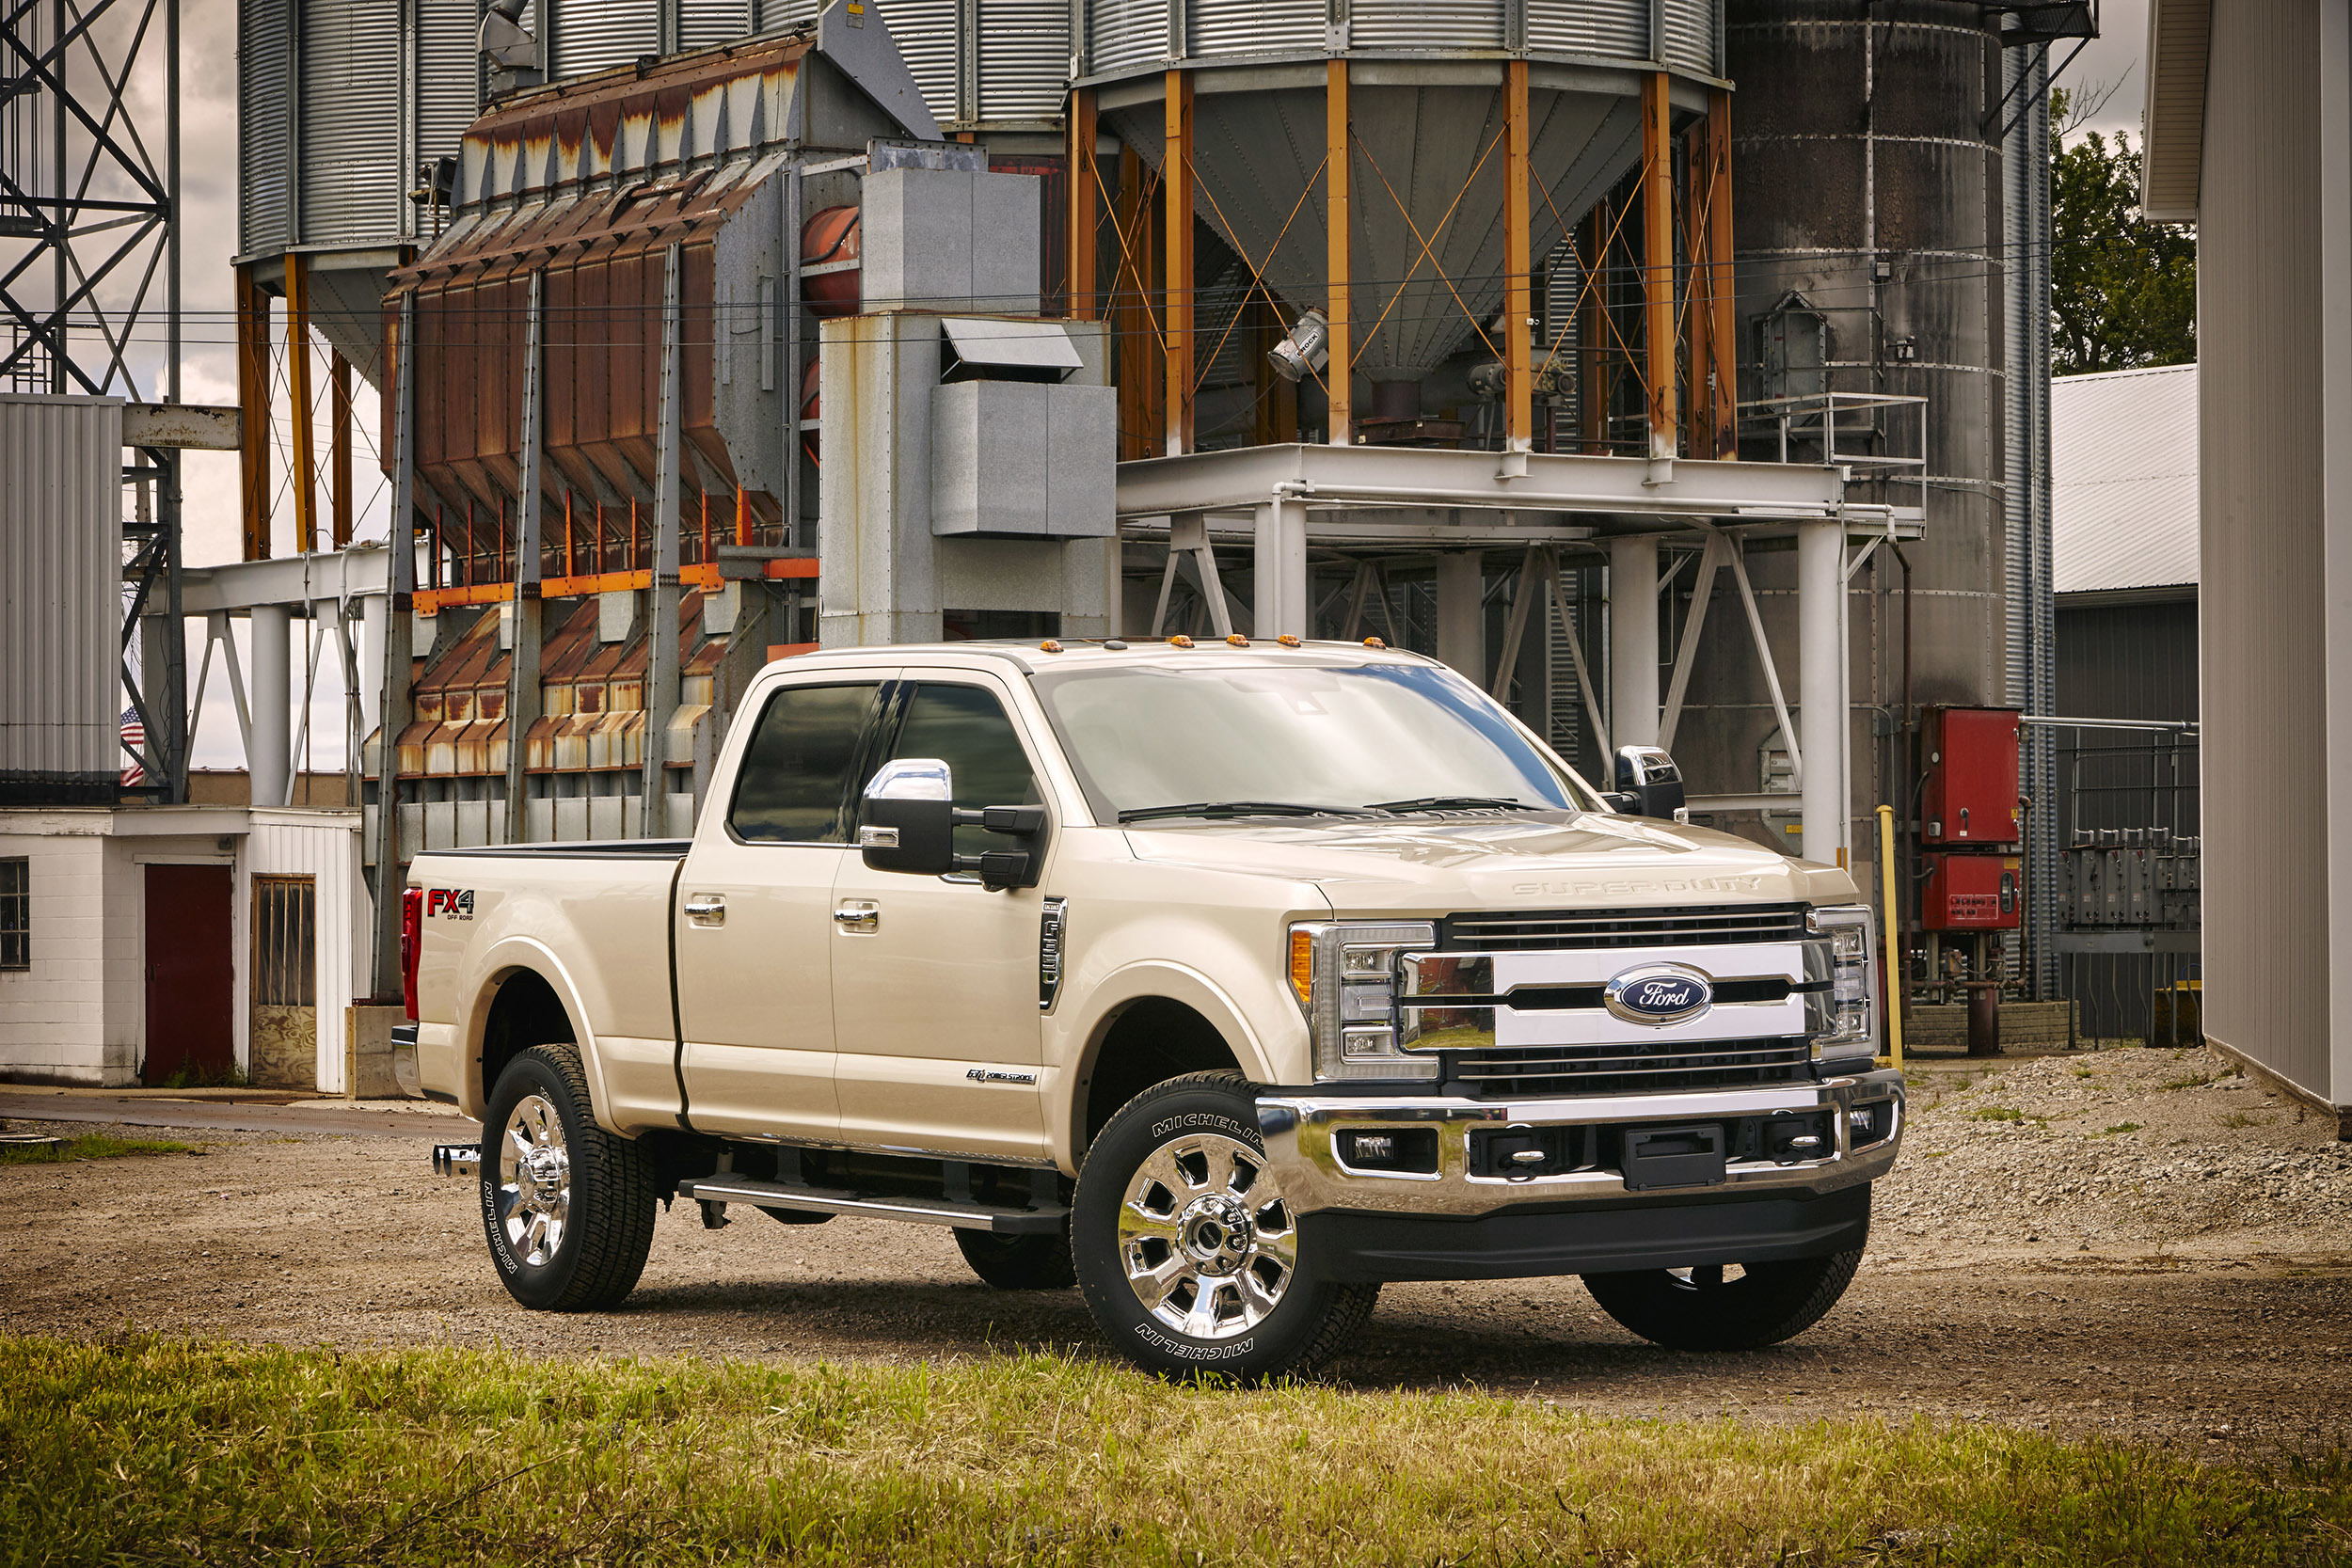 Via Autoblog There S A New Ford F Series Super Duty